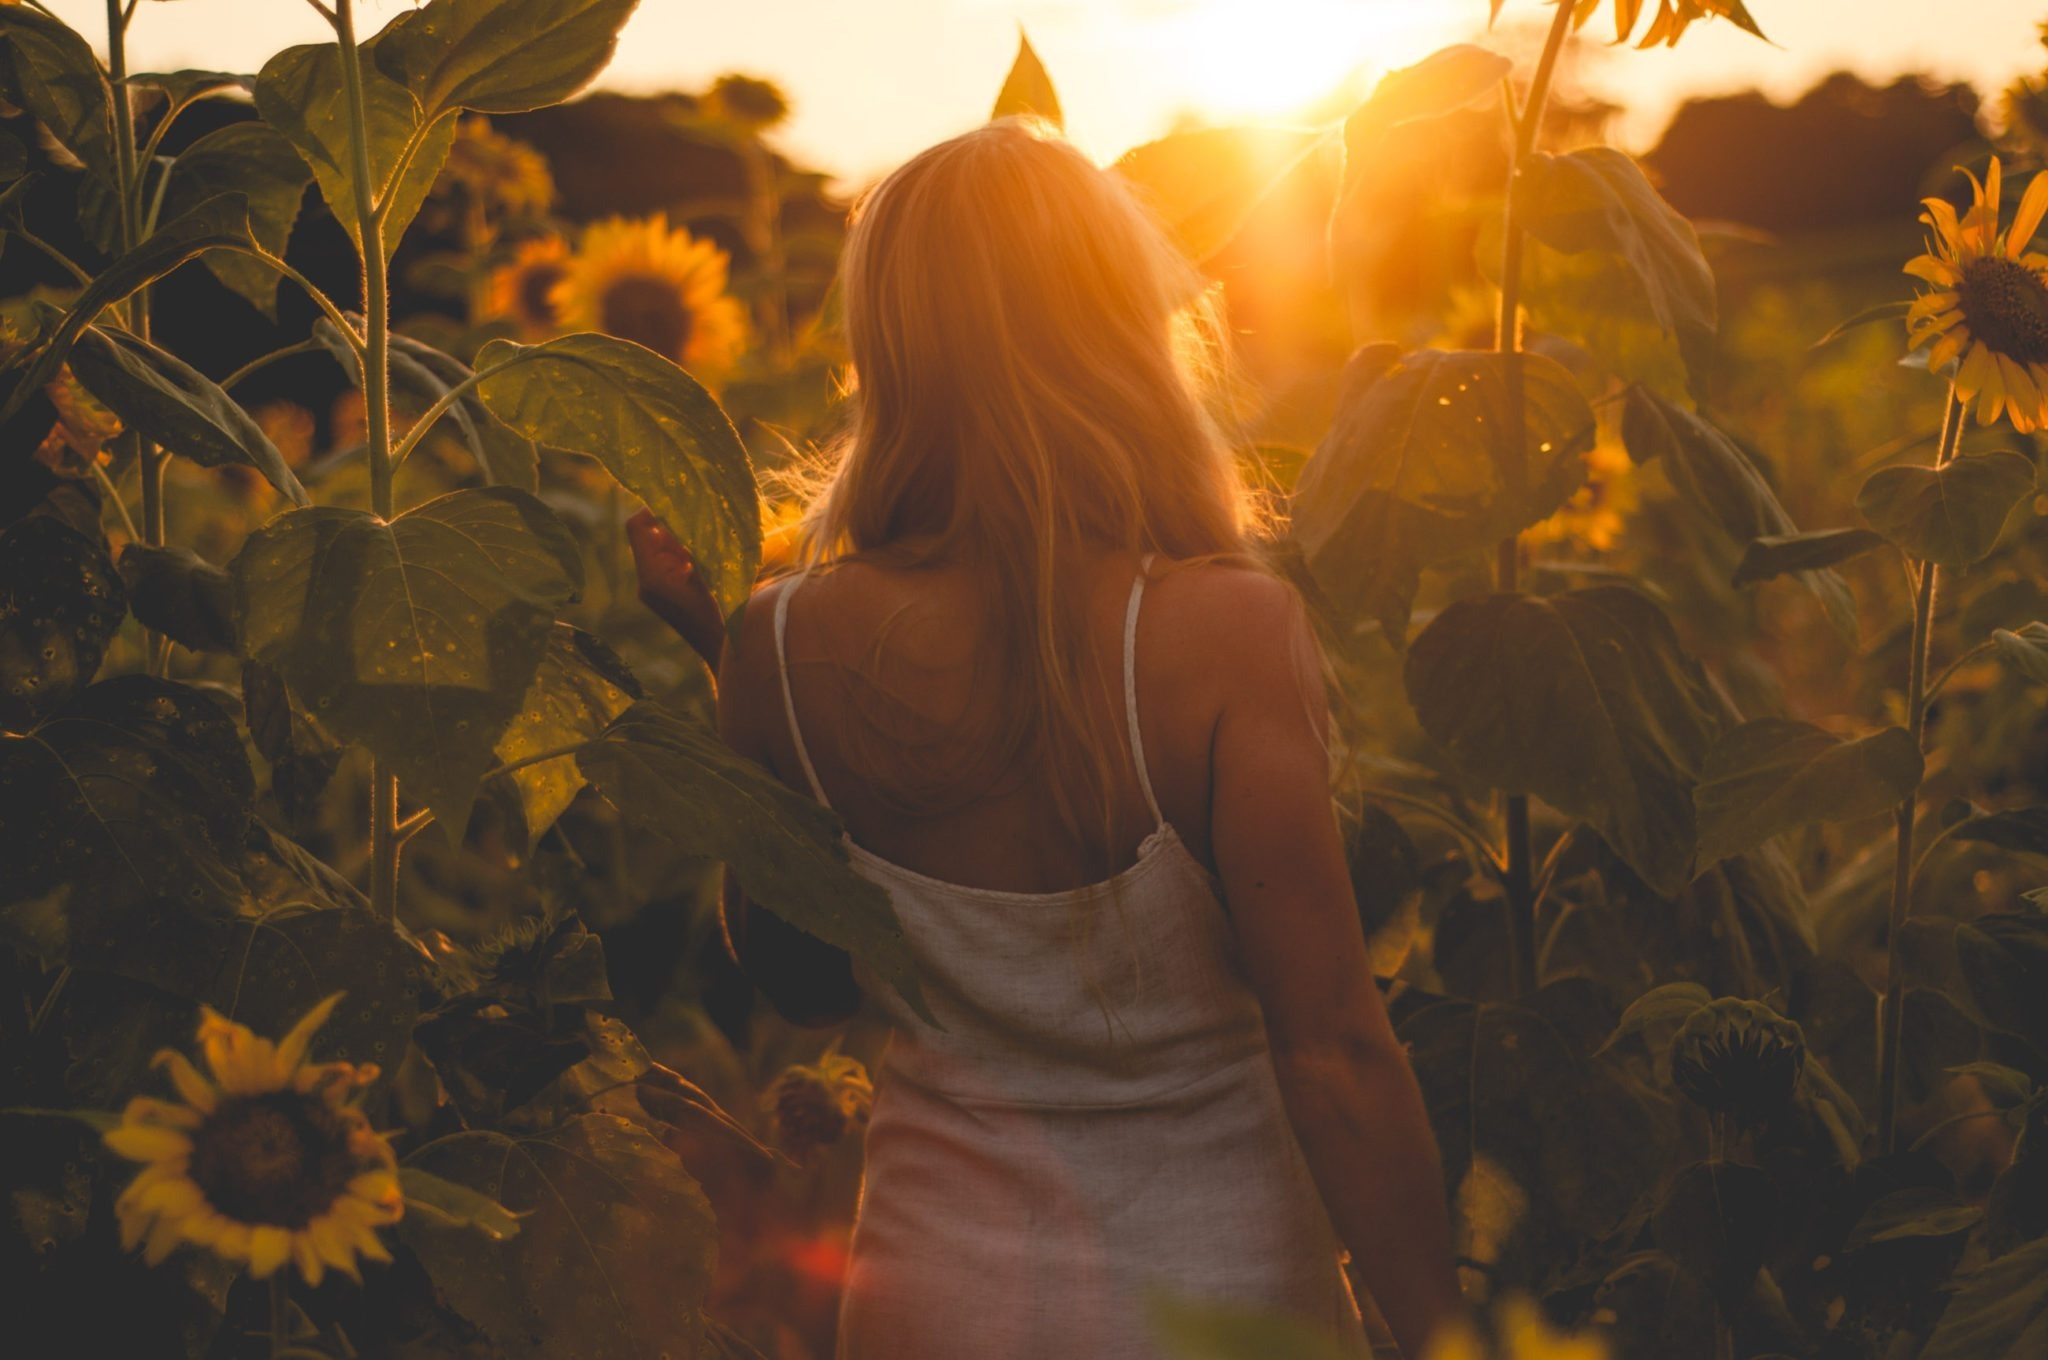 Megan Rae walking into the Sunflower field in golden light